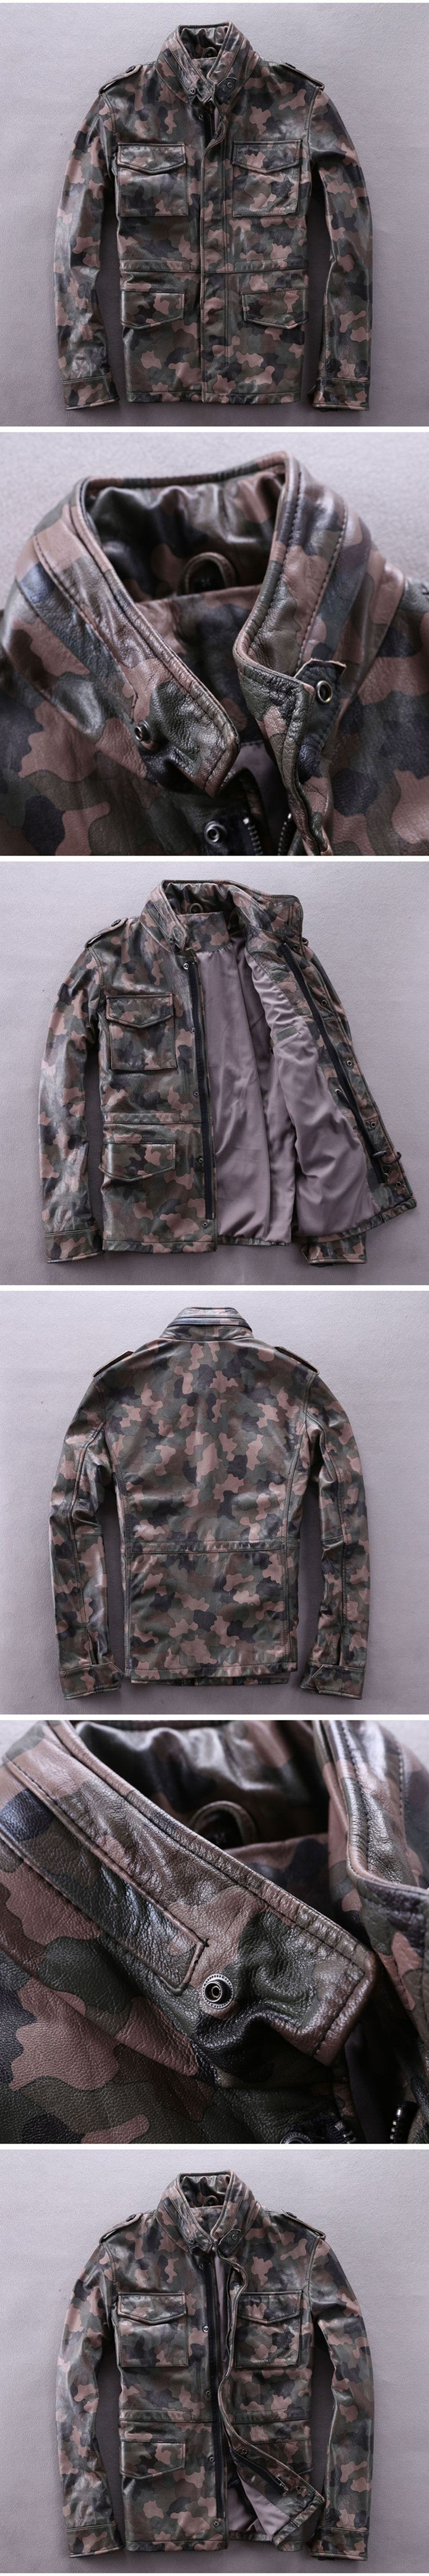 ca6d685c14b 2018 Men Camouflage M65 Leather Jacket Plus Size XXXL Genuine Thick Cowhide  Winter Military Russian Leather